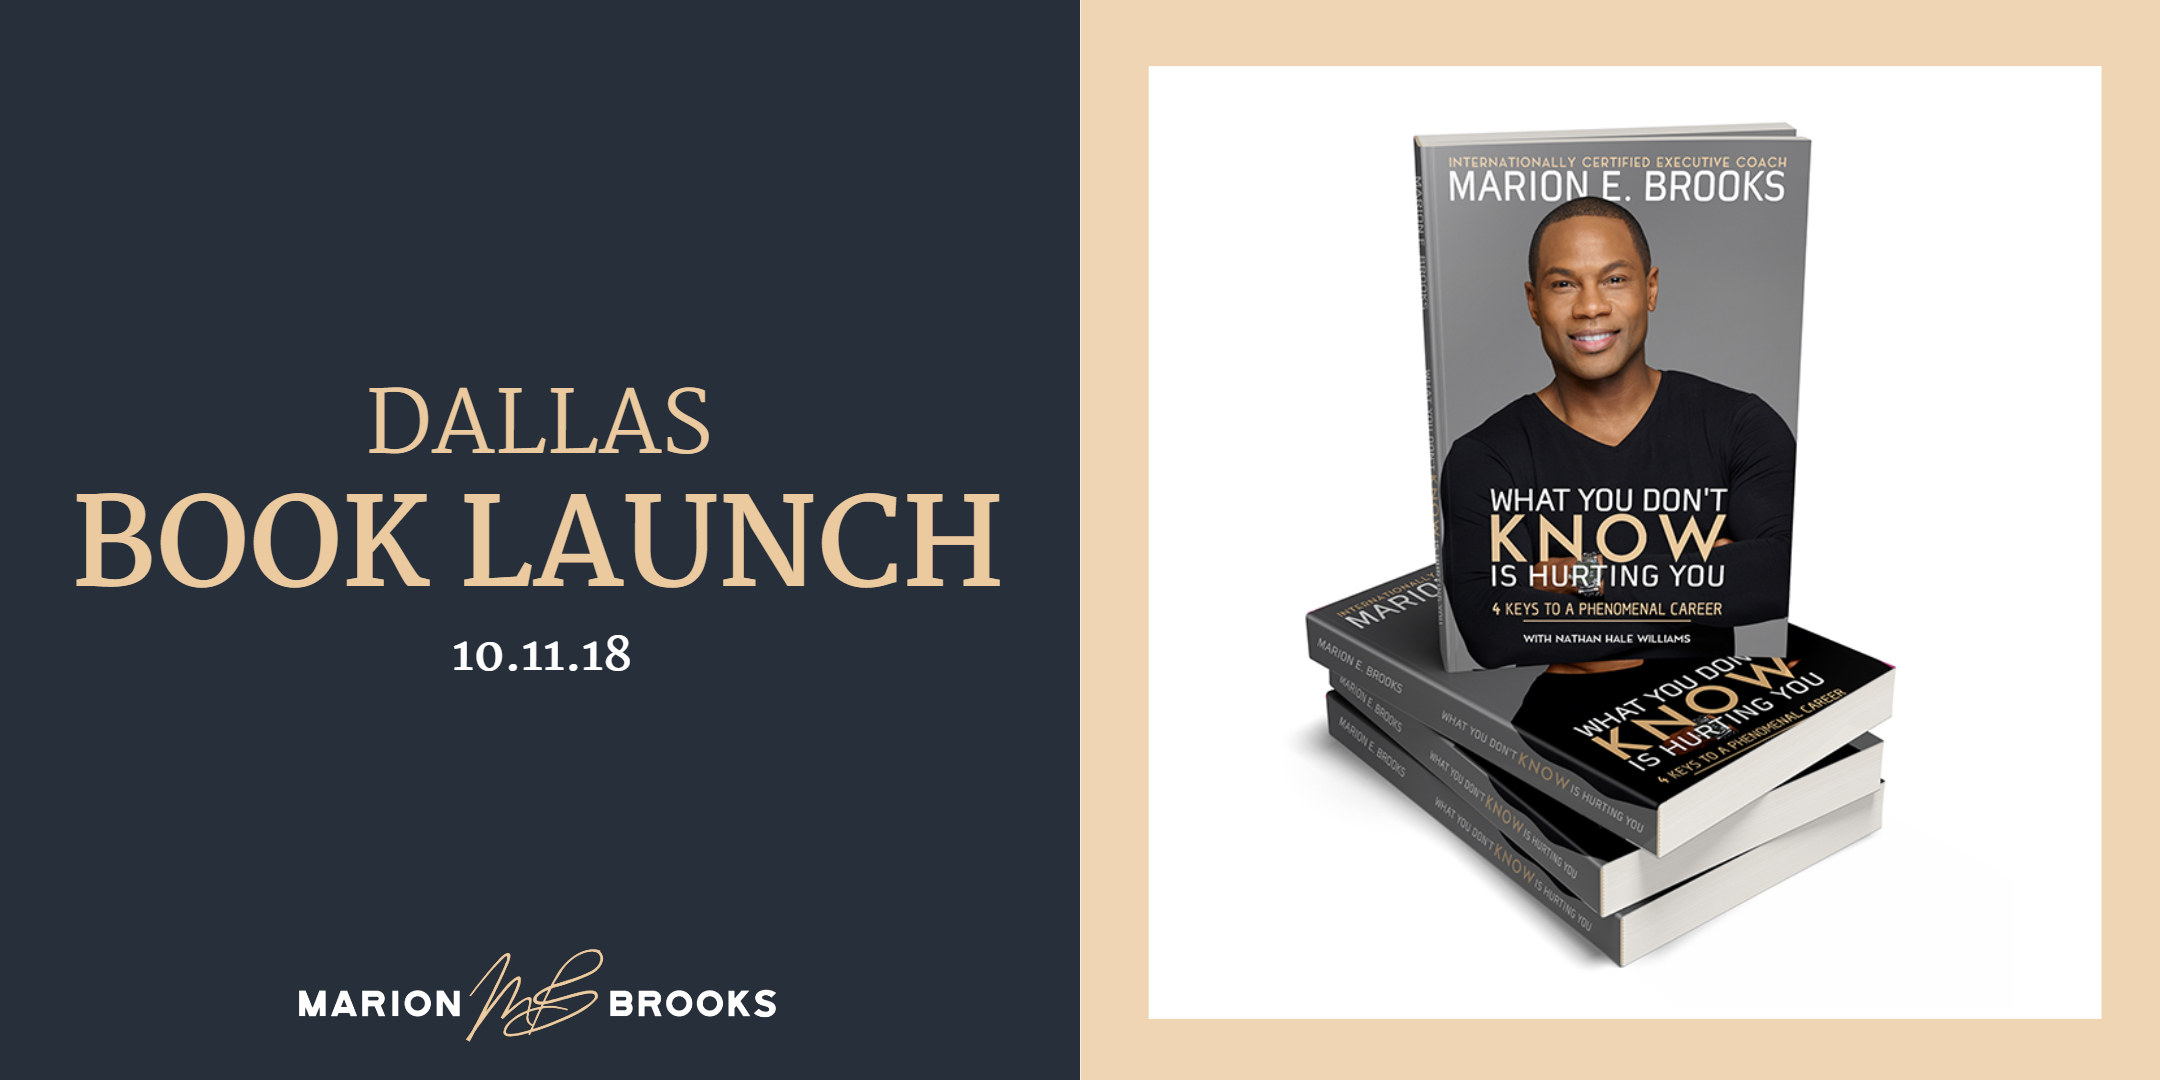 The Dallas Book Launch and Party Was A Huge Success